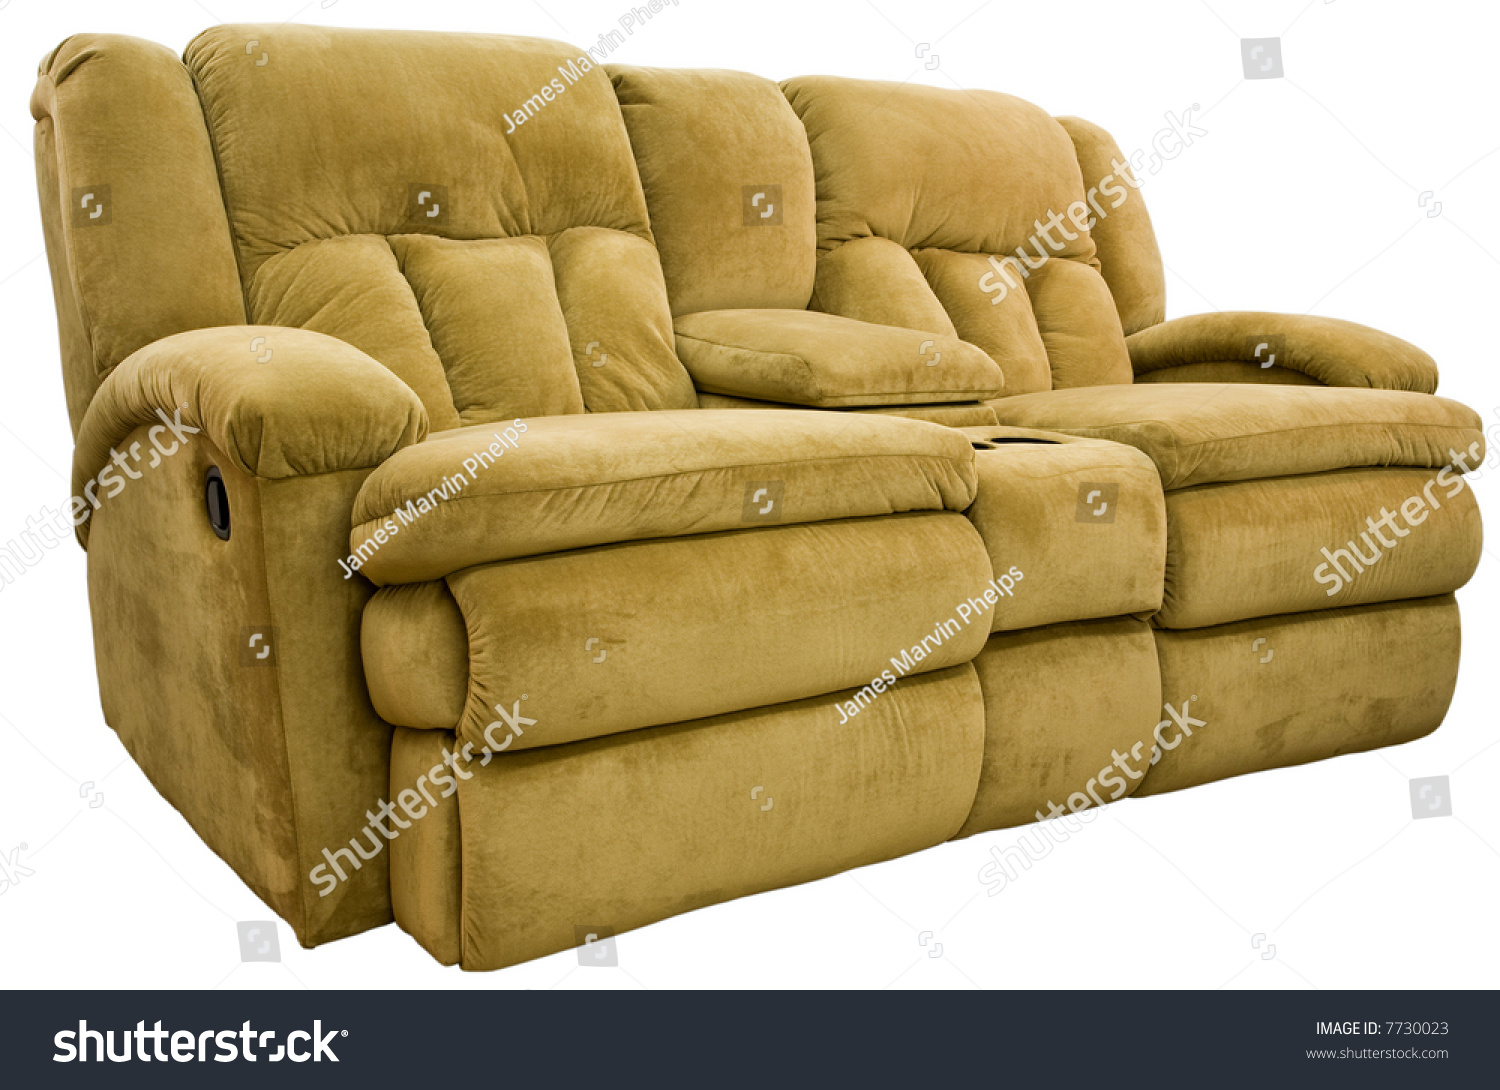 Micro fiber double reclining loveseat with cup holders stock photo 7730023 shutterstock Loveseat with cup holders